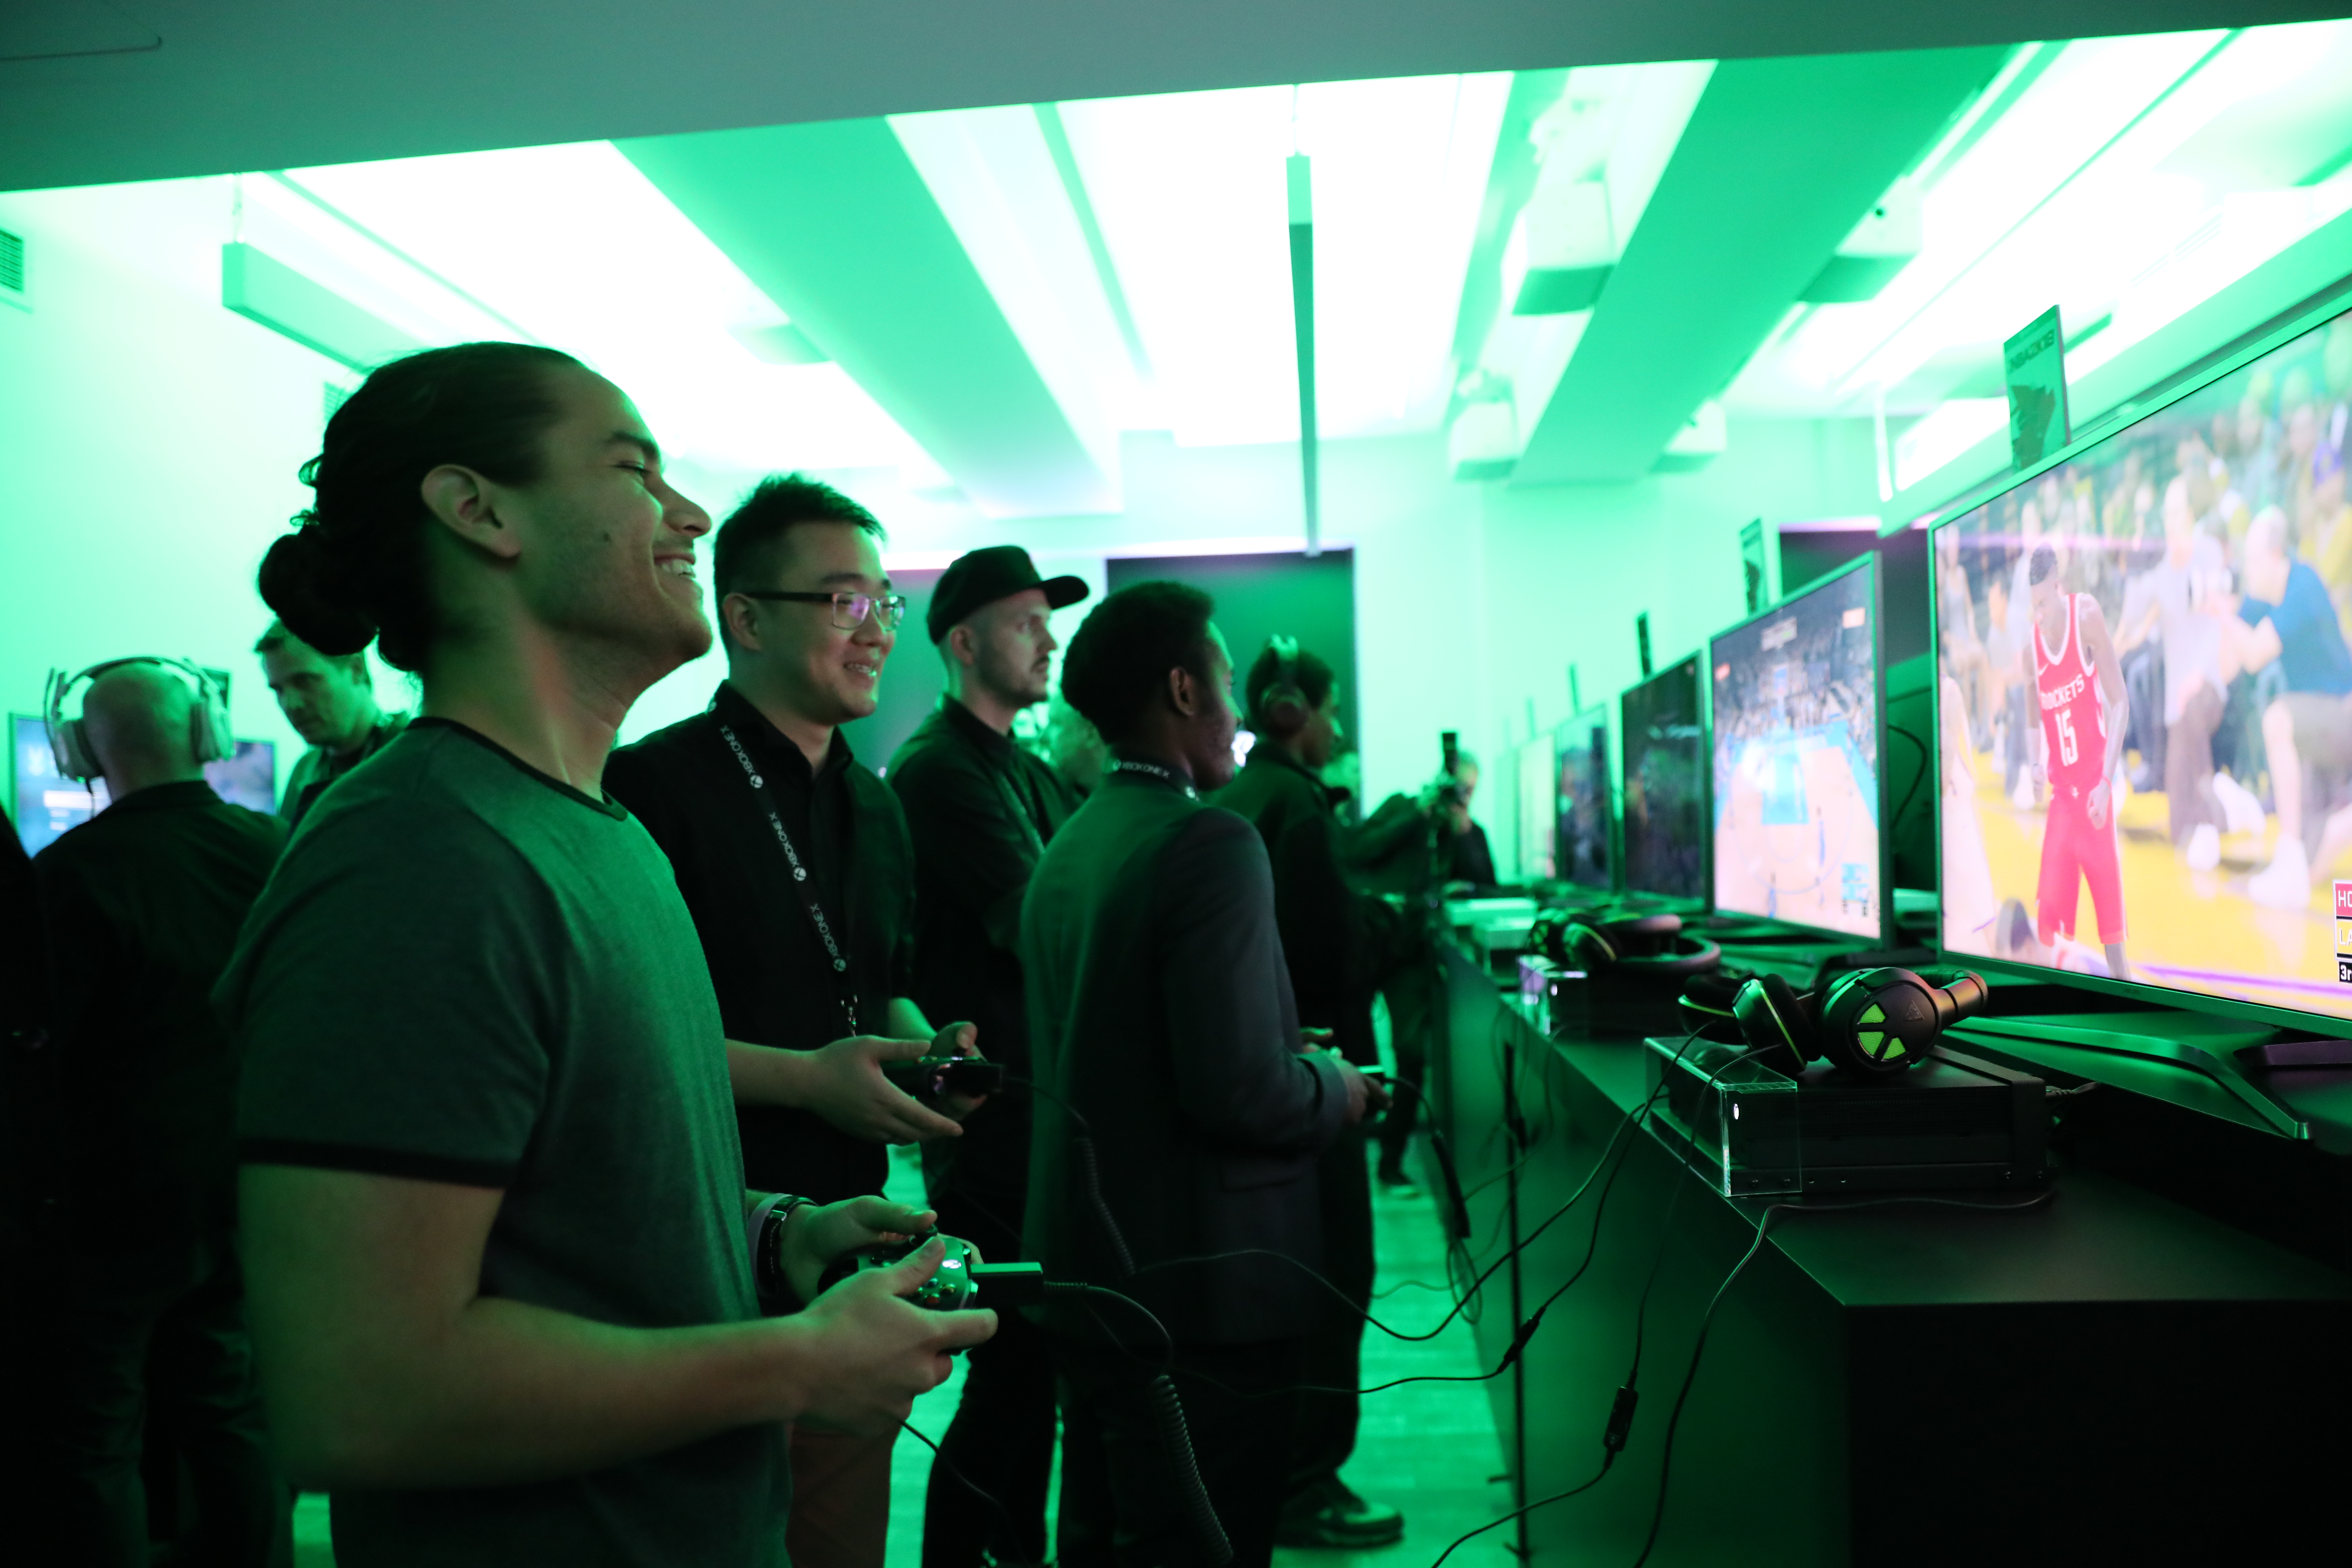 Xbox gamers at Xbox One X launch